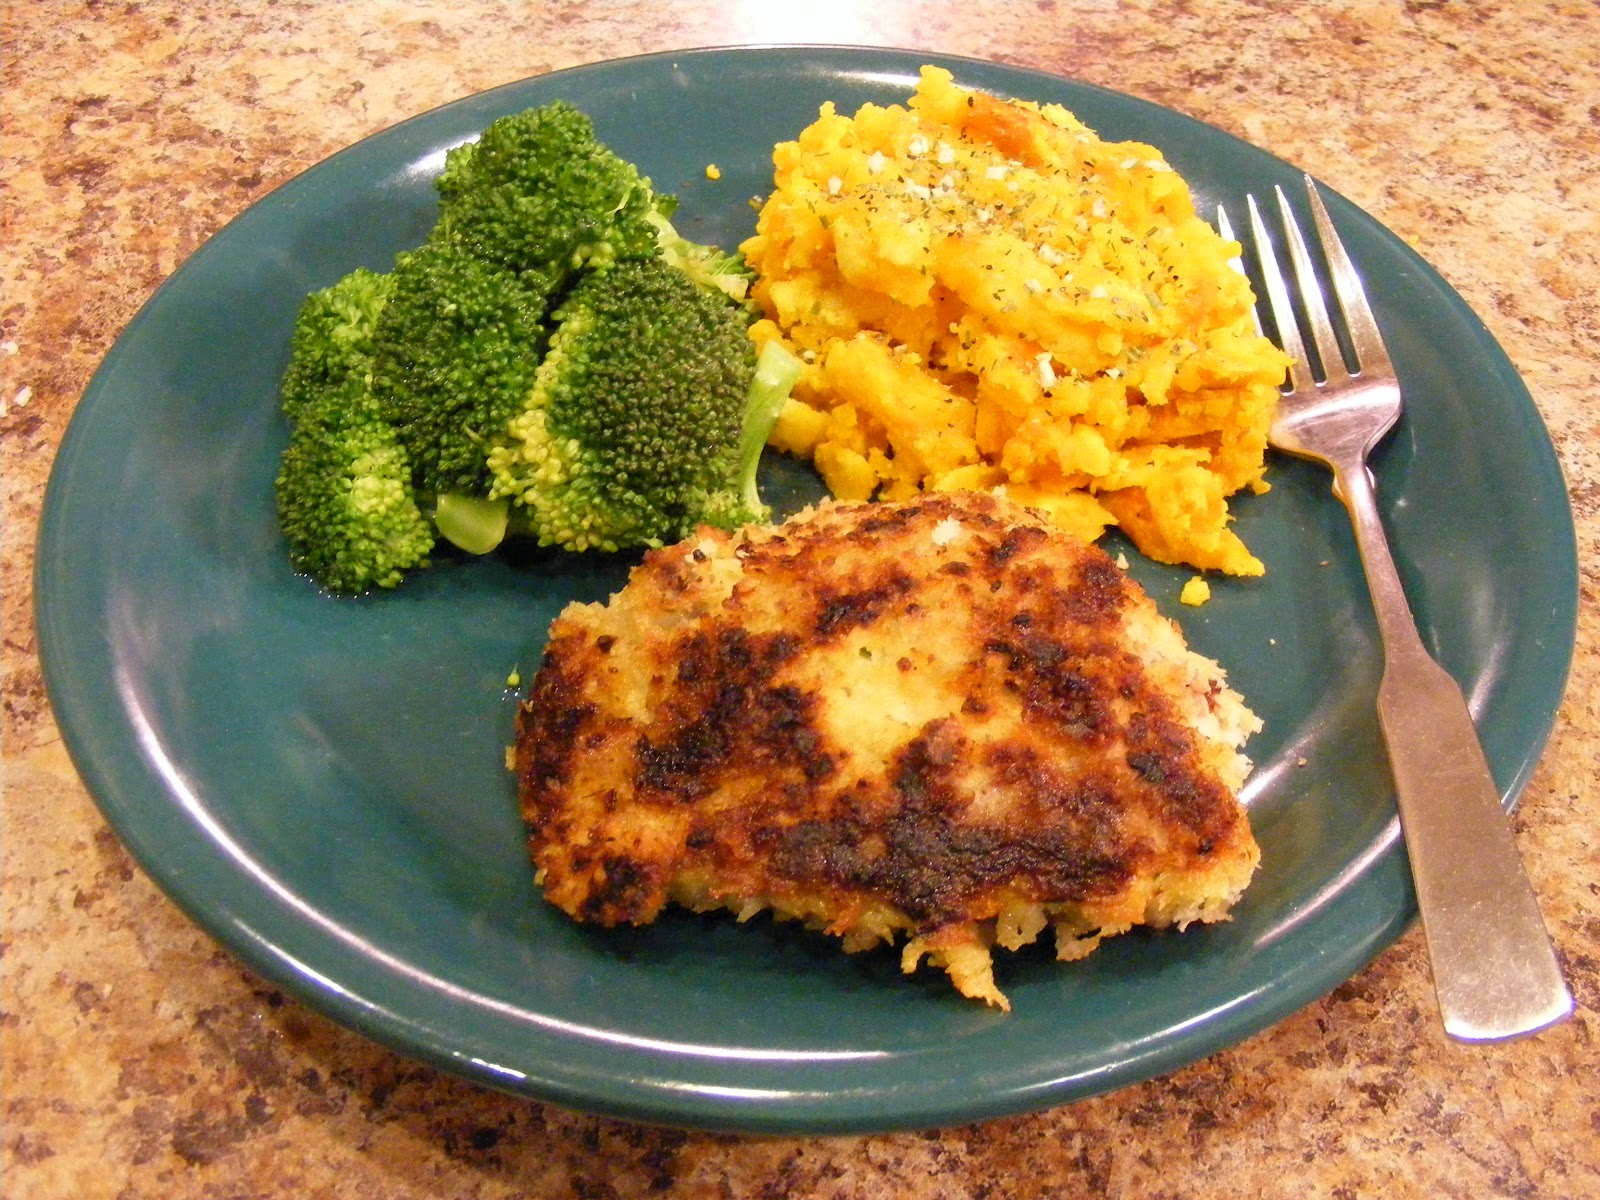 ... !: Herb Crusted Chicken Thighs with Steamed Broccoli and Acorn Squash